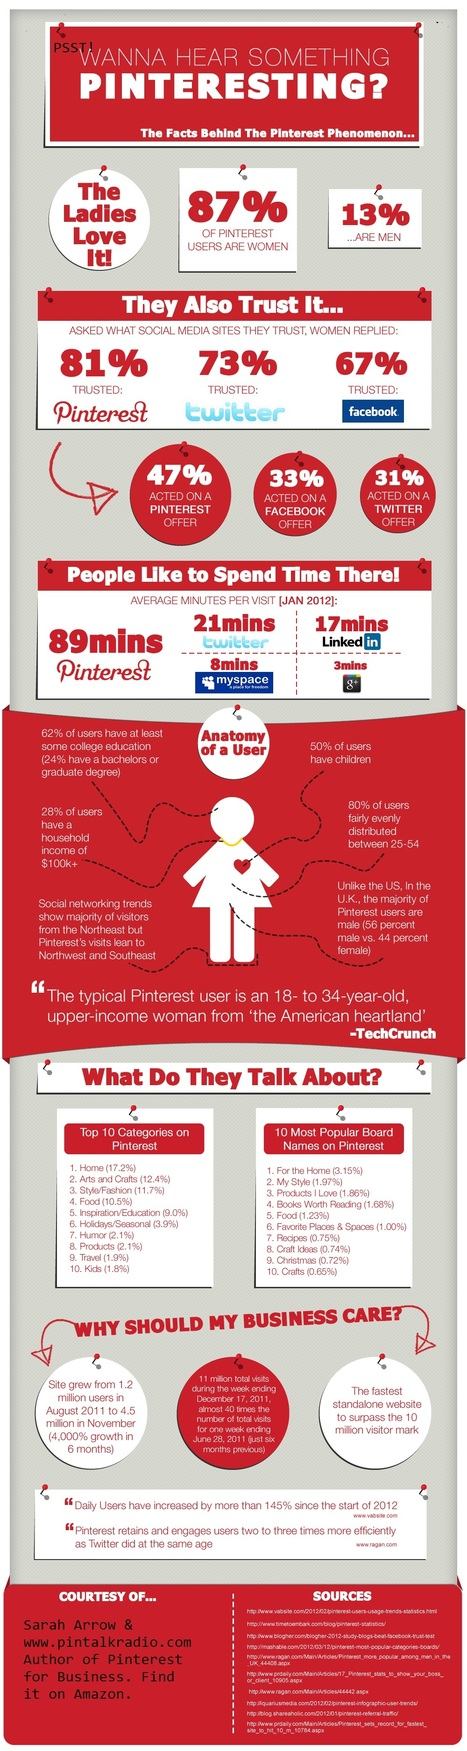 Is Pinterest The Most Trusted Of Social Media Sites? #Infographic   AtDotCom Social media   Scoop.it